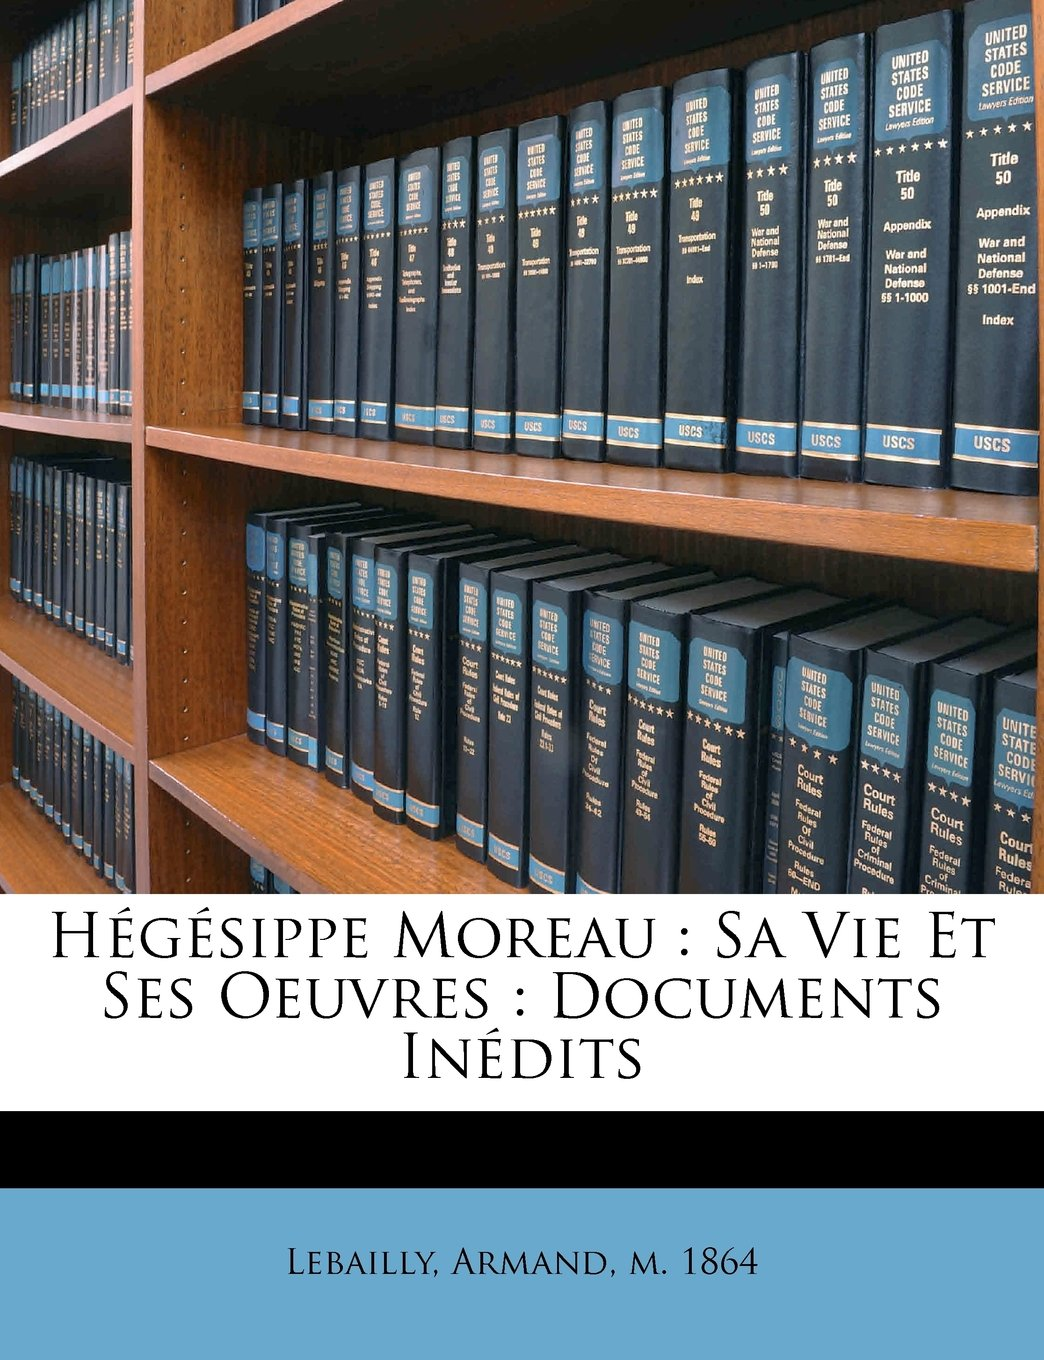 Download Hégésippe Moreau: Sa Vie Et Ses Oeuvres : Documents Inédits (French Edition) pdf epub